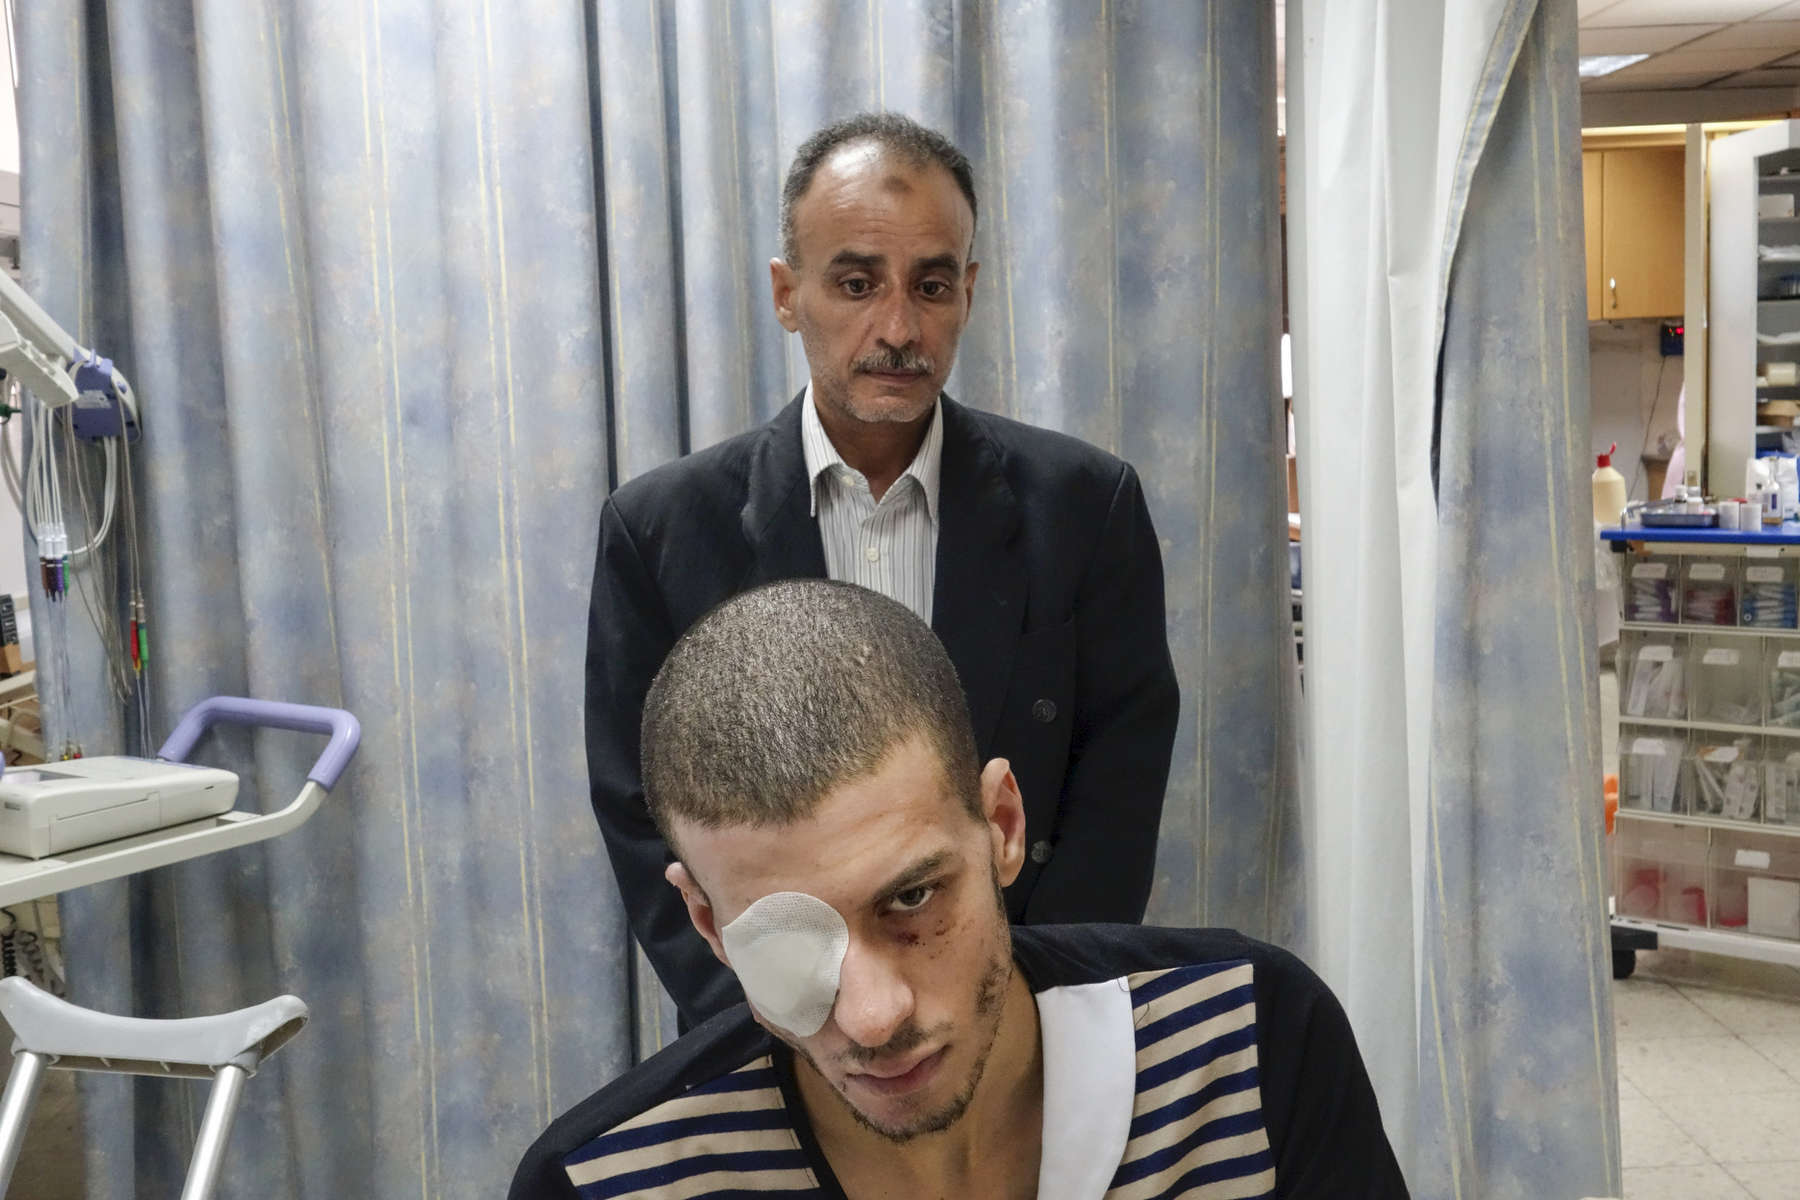 2014. Jerusalem.  Israel. Hassan Al-Hilal, 21 years old.  Imad Al-Hilal, father, 49 years old. From Khan Younis.  Incident on July 22, 2014 at 10pm. He was walking in the street going to buy groceries. His father was 50m behind him when a missile hit. He flew 12m. He is a university student studying software engineering. Burns on the right side of the body. Difficulty moving. Loss of feeling in foot. Shrapnel throughout body. Internal cut in eye. Spent 30 hours in ICU. St Josephs French Hospital in East Jerusalem.   The hospital, owned by the Vatican, was treating the patients pro-bono.  42 had arrived since the beginning of Operation Protective Edge.  3 children have had their limbs amputated. Patients arrived after primary medical treatment. Patients received permits and came through following coordination between Israel, Red Cross, and Red Crescent. Permits are temporary and only for the hospital, meaning they cannot leave the hospital premises.